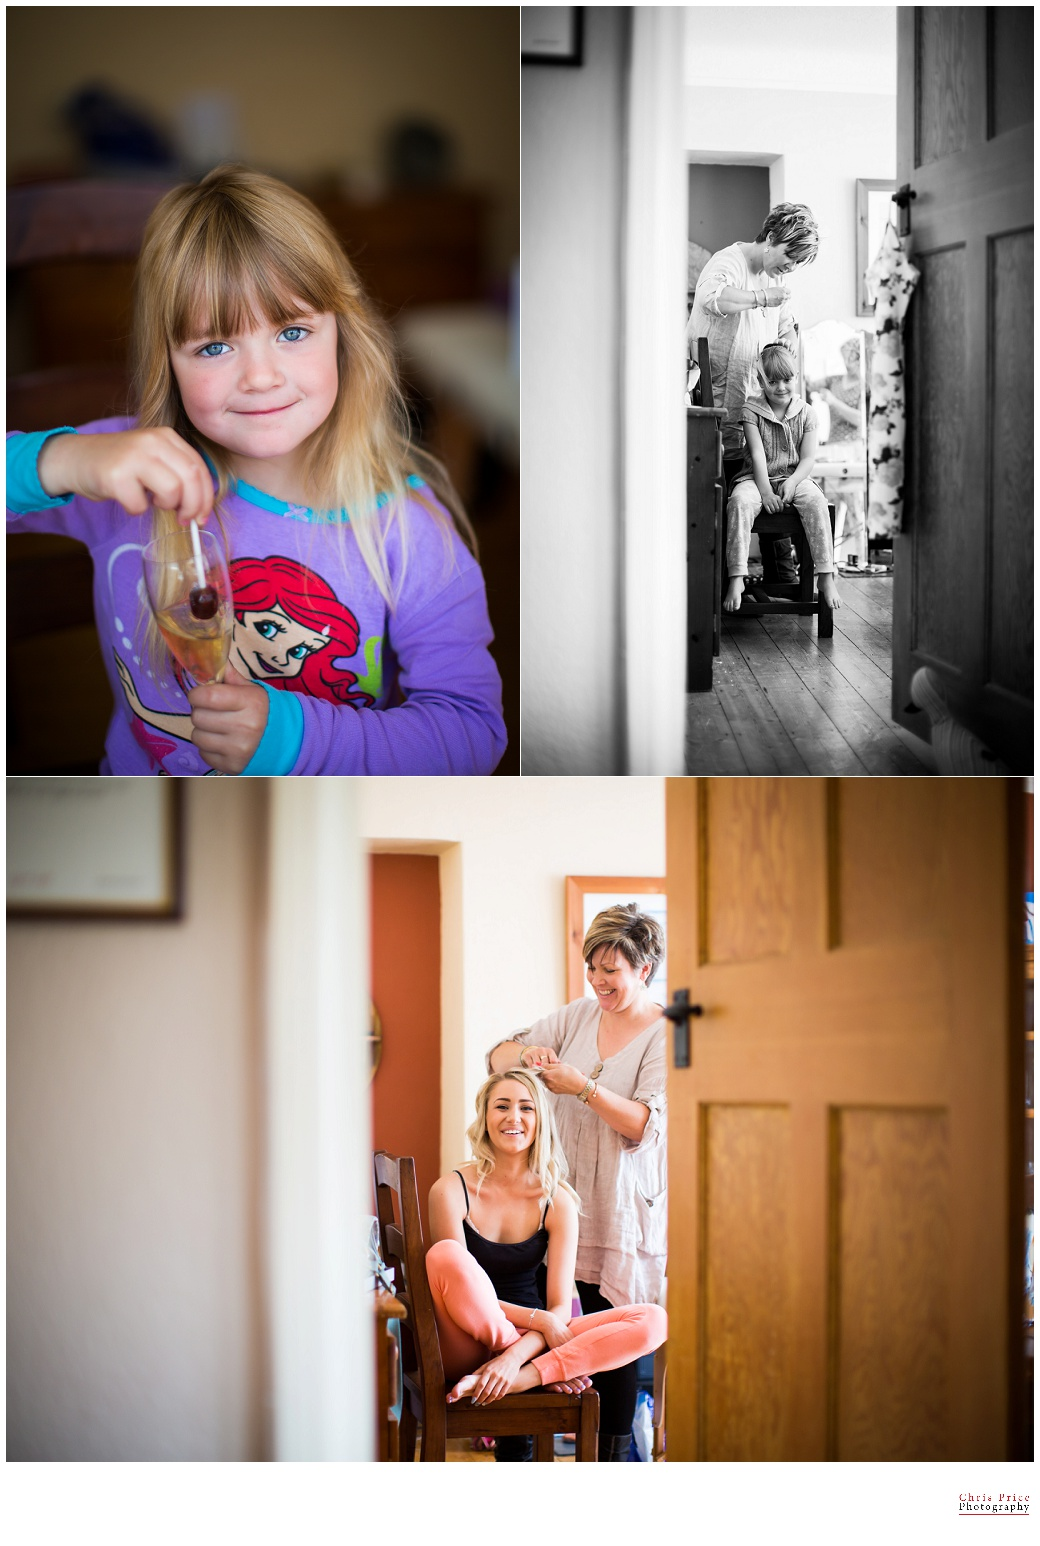 Chris Price Photography, Pembrokeshire Wedding Photography, South Wales Wedding Photography, Llys Meddyg Weddings